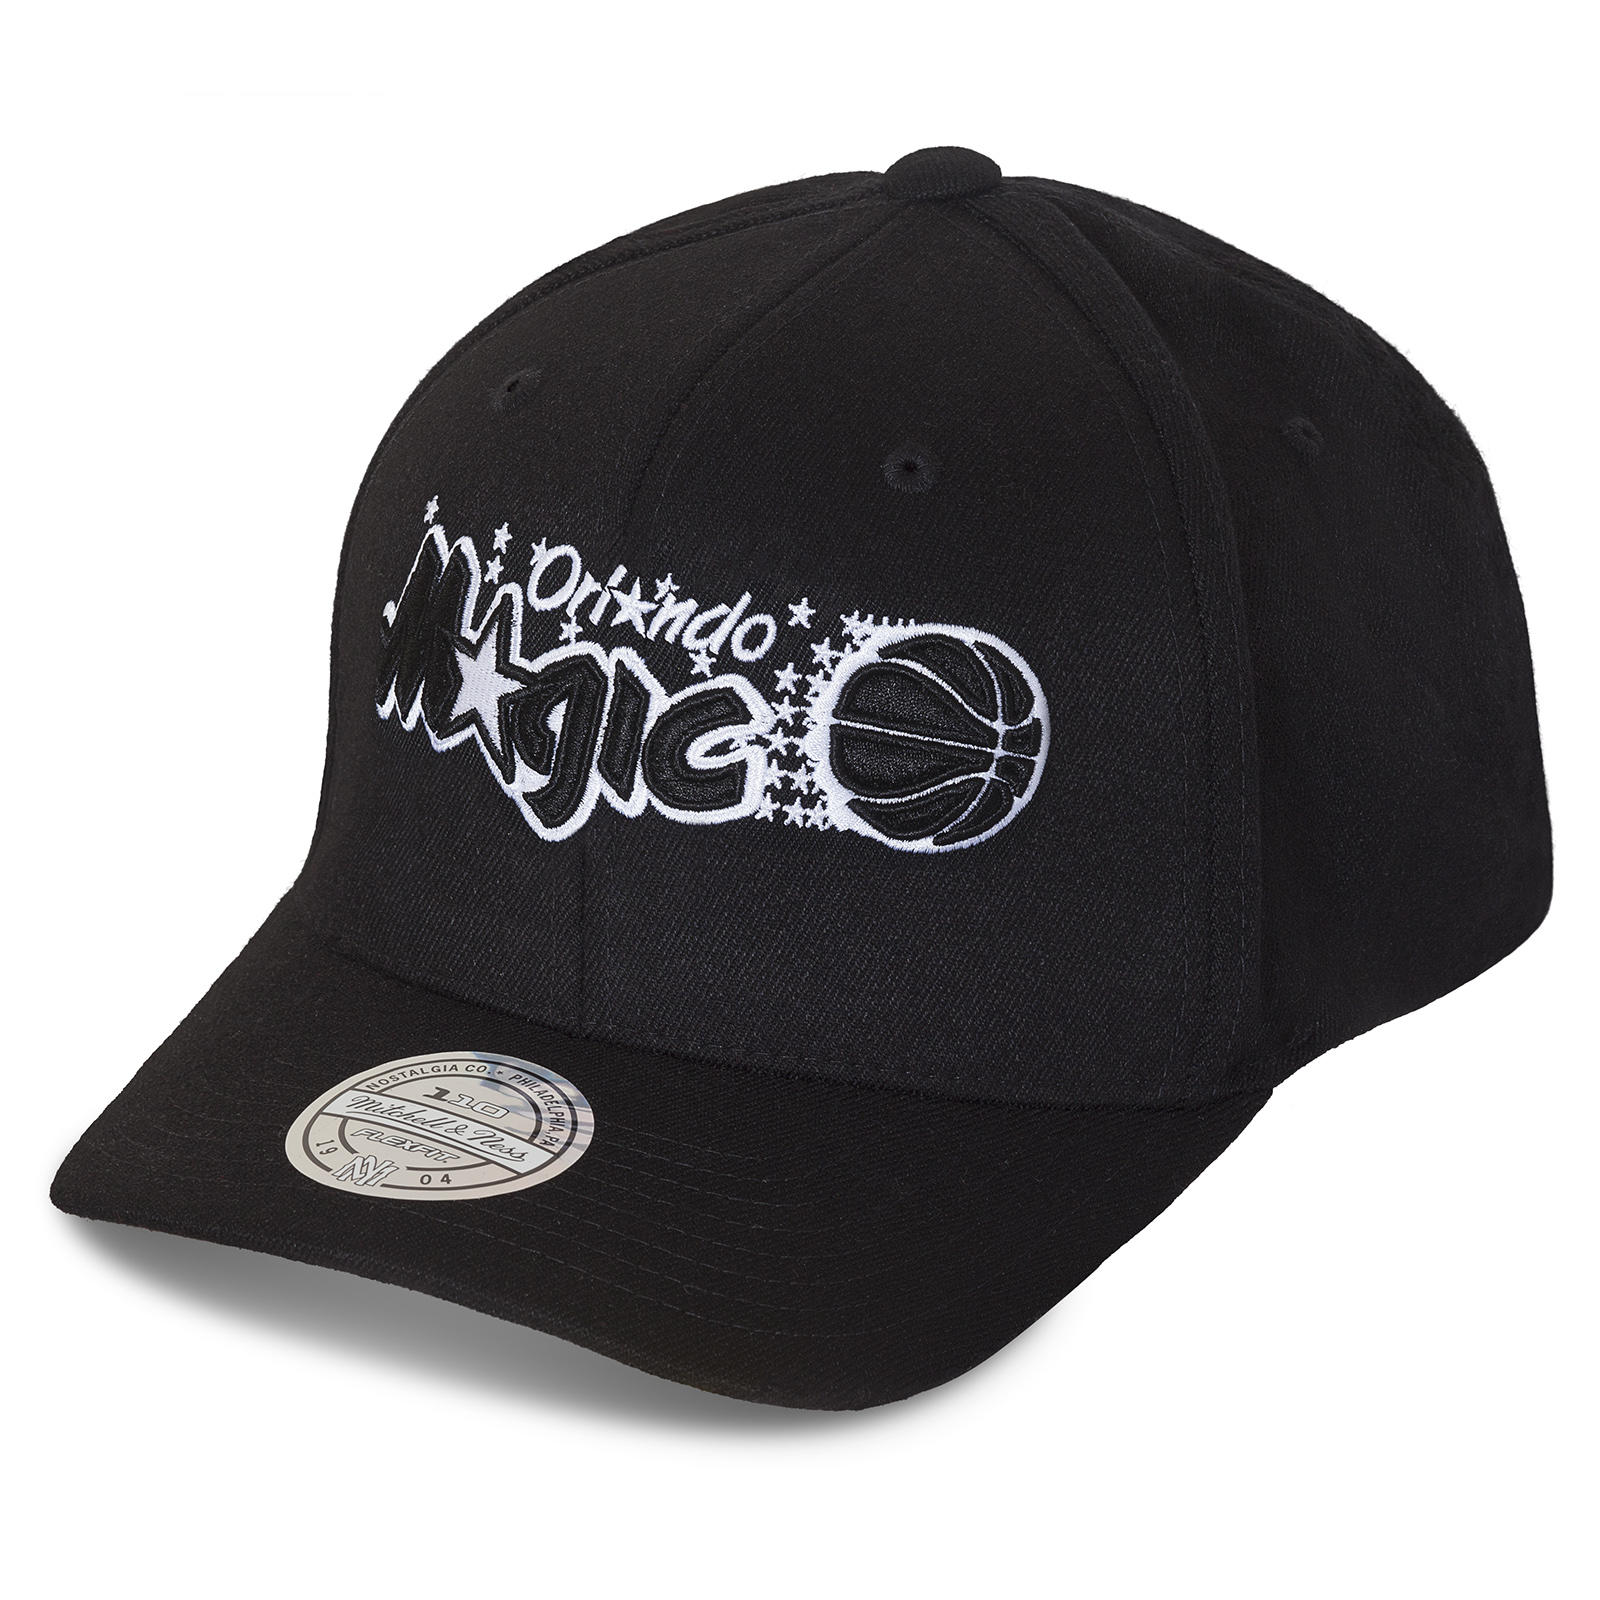 be986de34c6 ... Black   White 110 Snapback Our Price  £12.50 ...